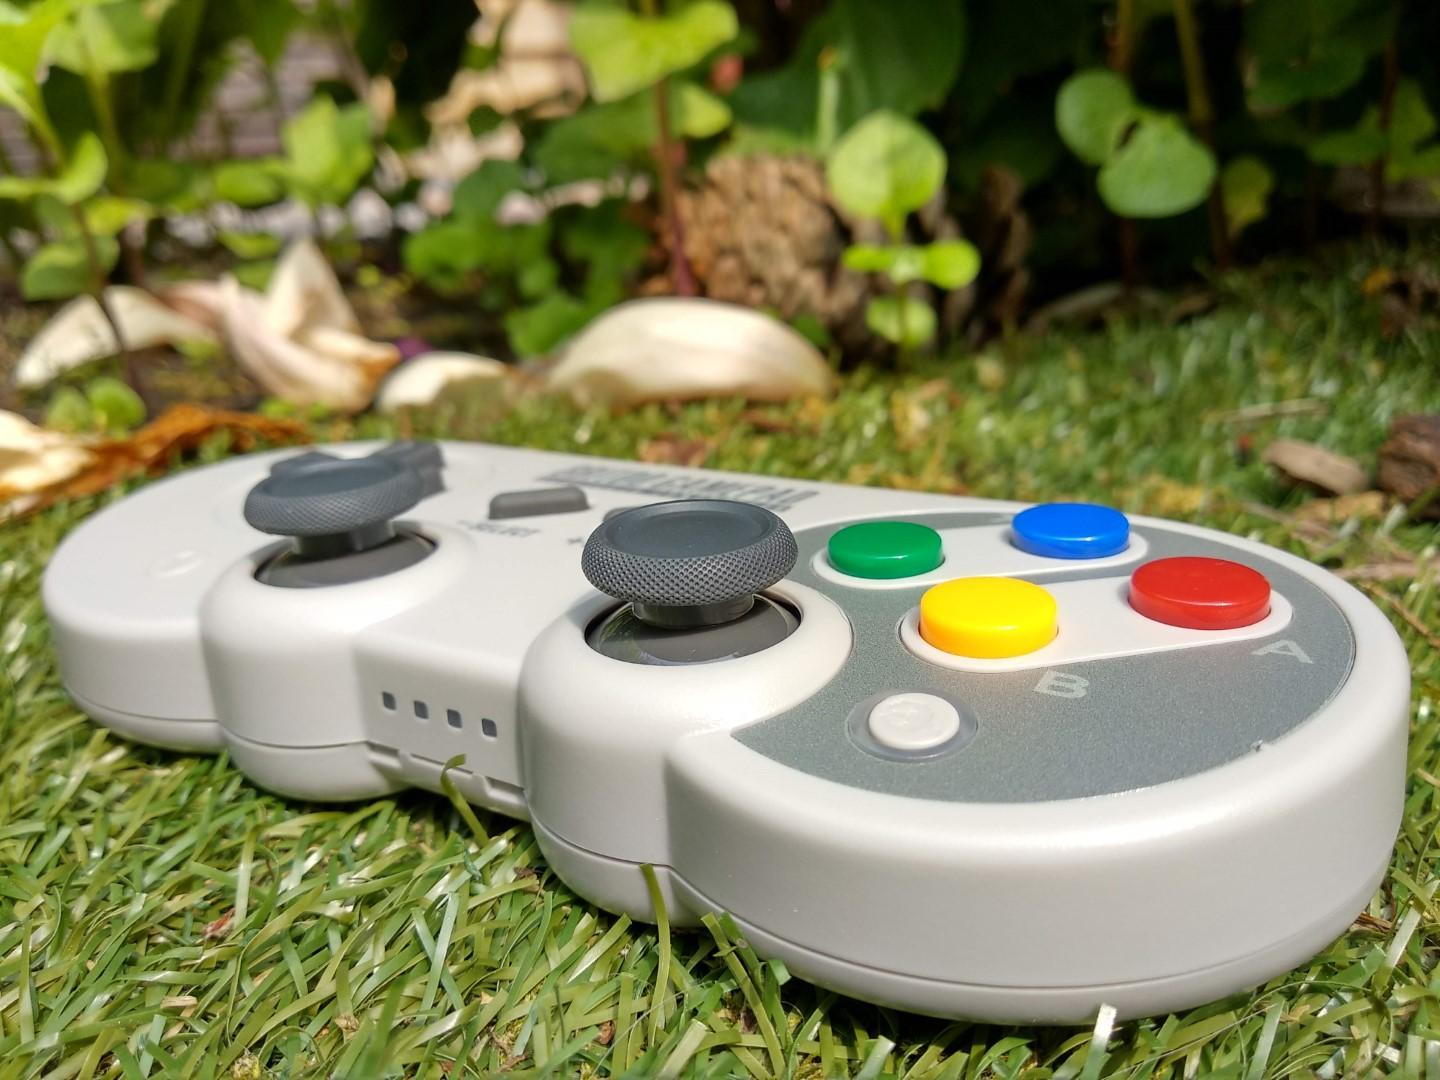 8Bitdo SF30 Pro controller review online